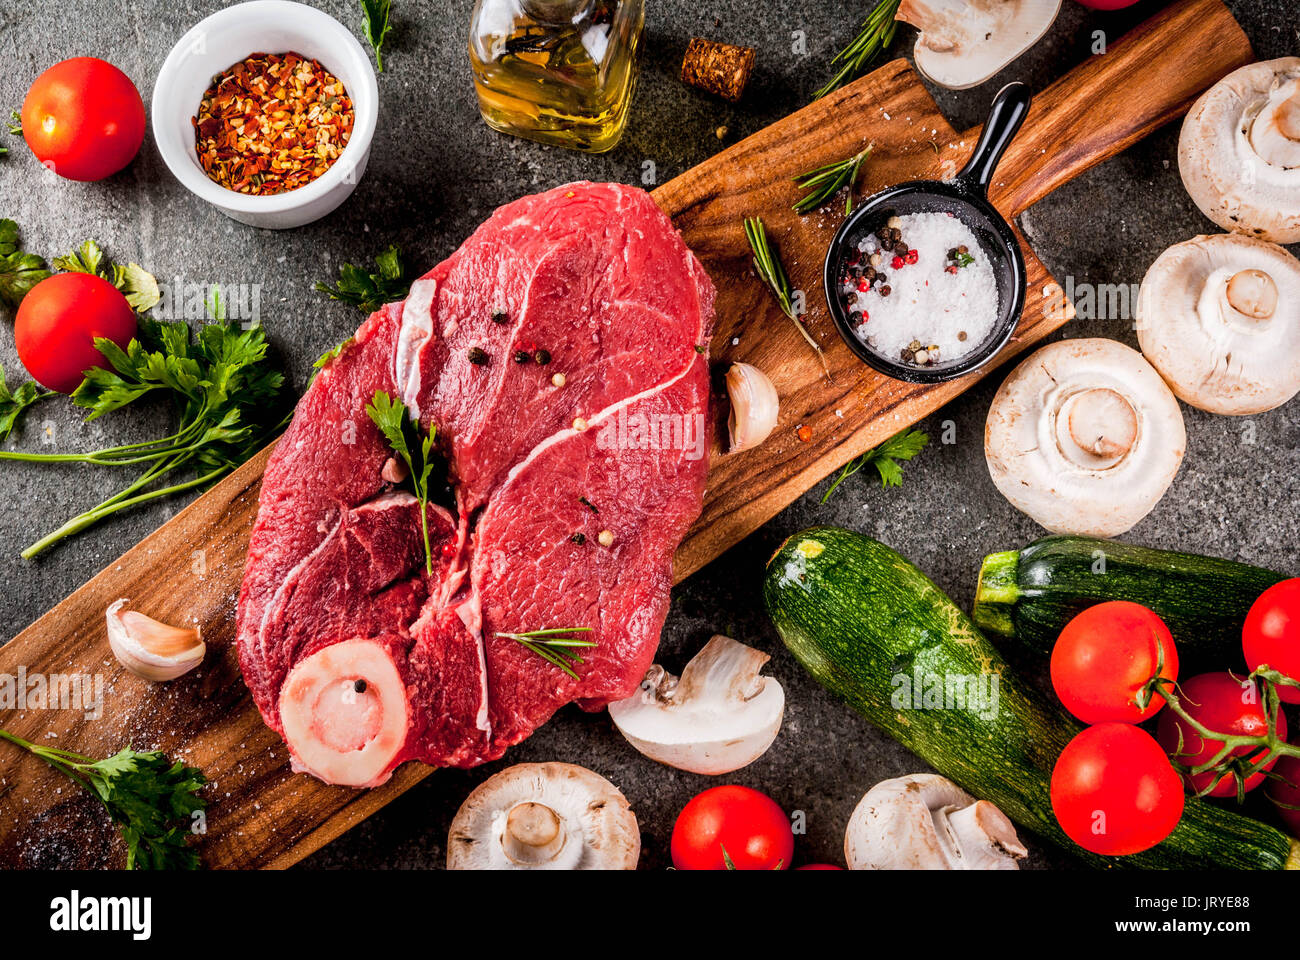 Raw meat with ingredients for dinner. Beef fillet, tenderloin, on cutting board, with salt, pepper, parsley, rosemary, oil, garlic, tomato, mushroom,  - Stock Image